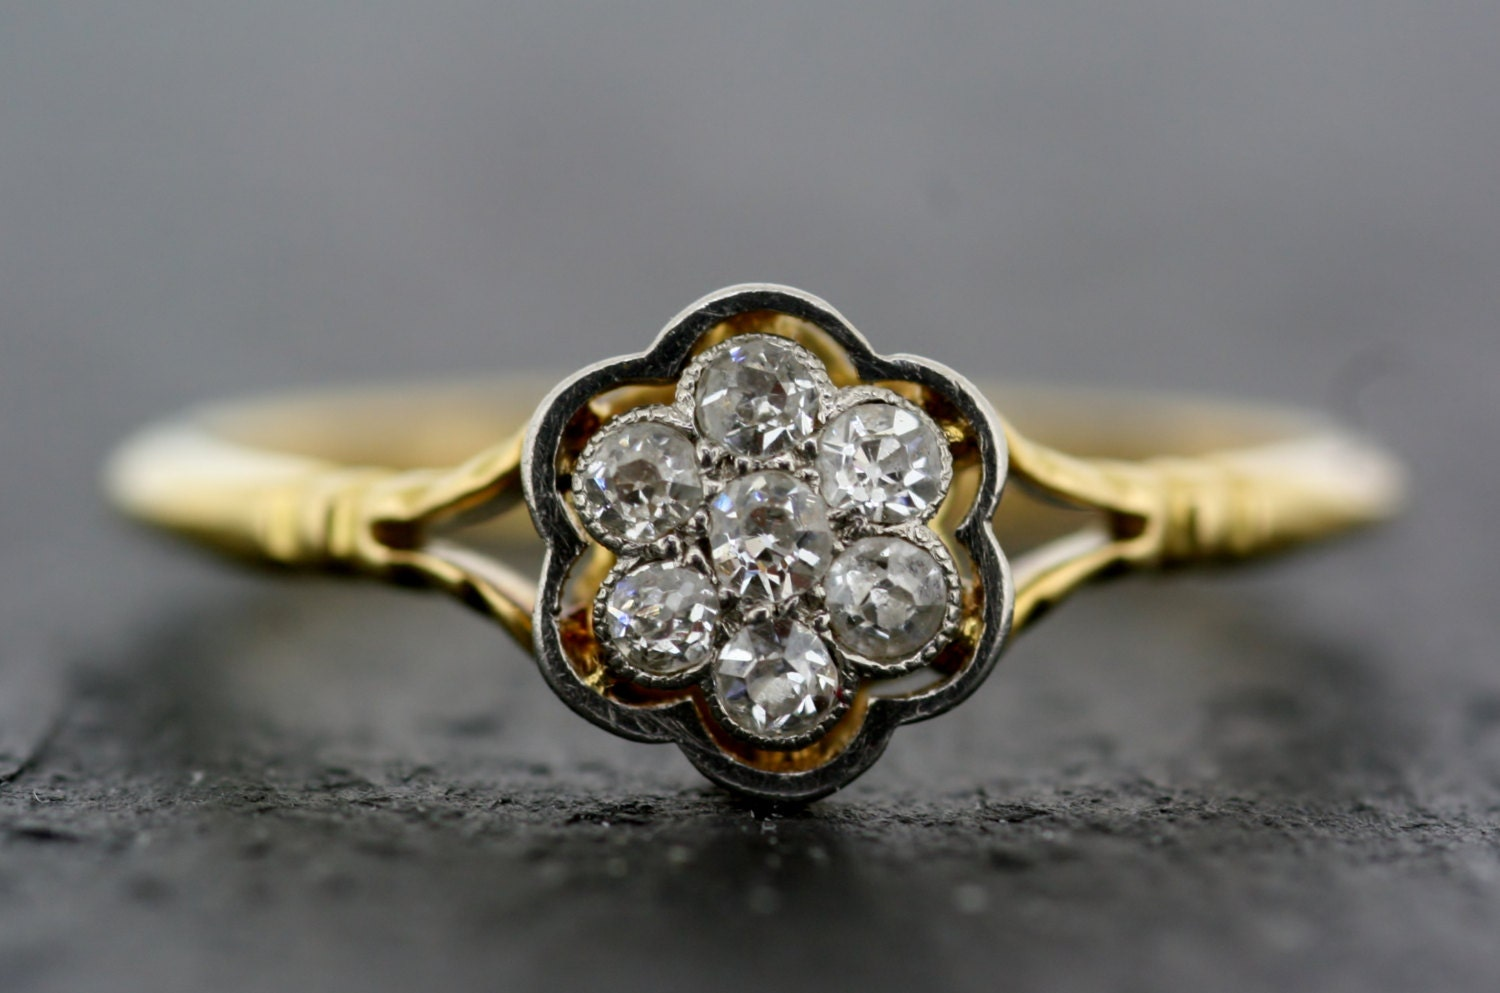 Antique Diamond Ring Vintage 18ct Gold Diamond 1930s Cluster